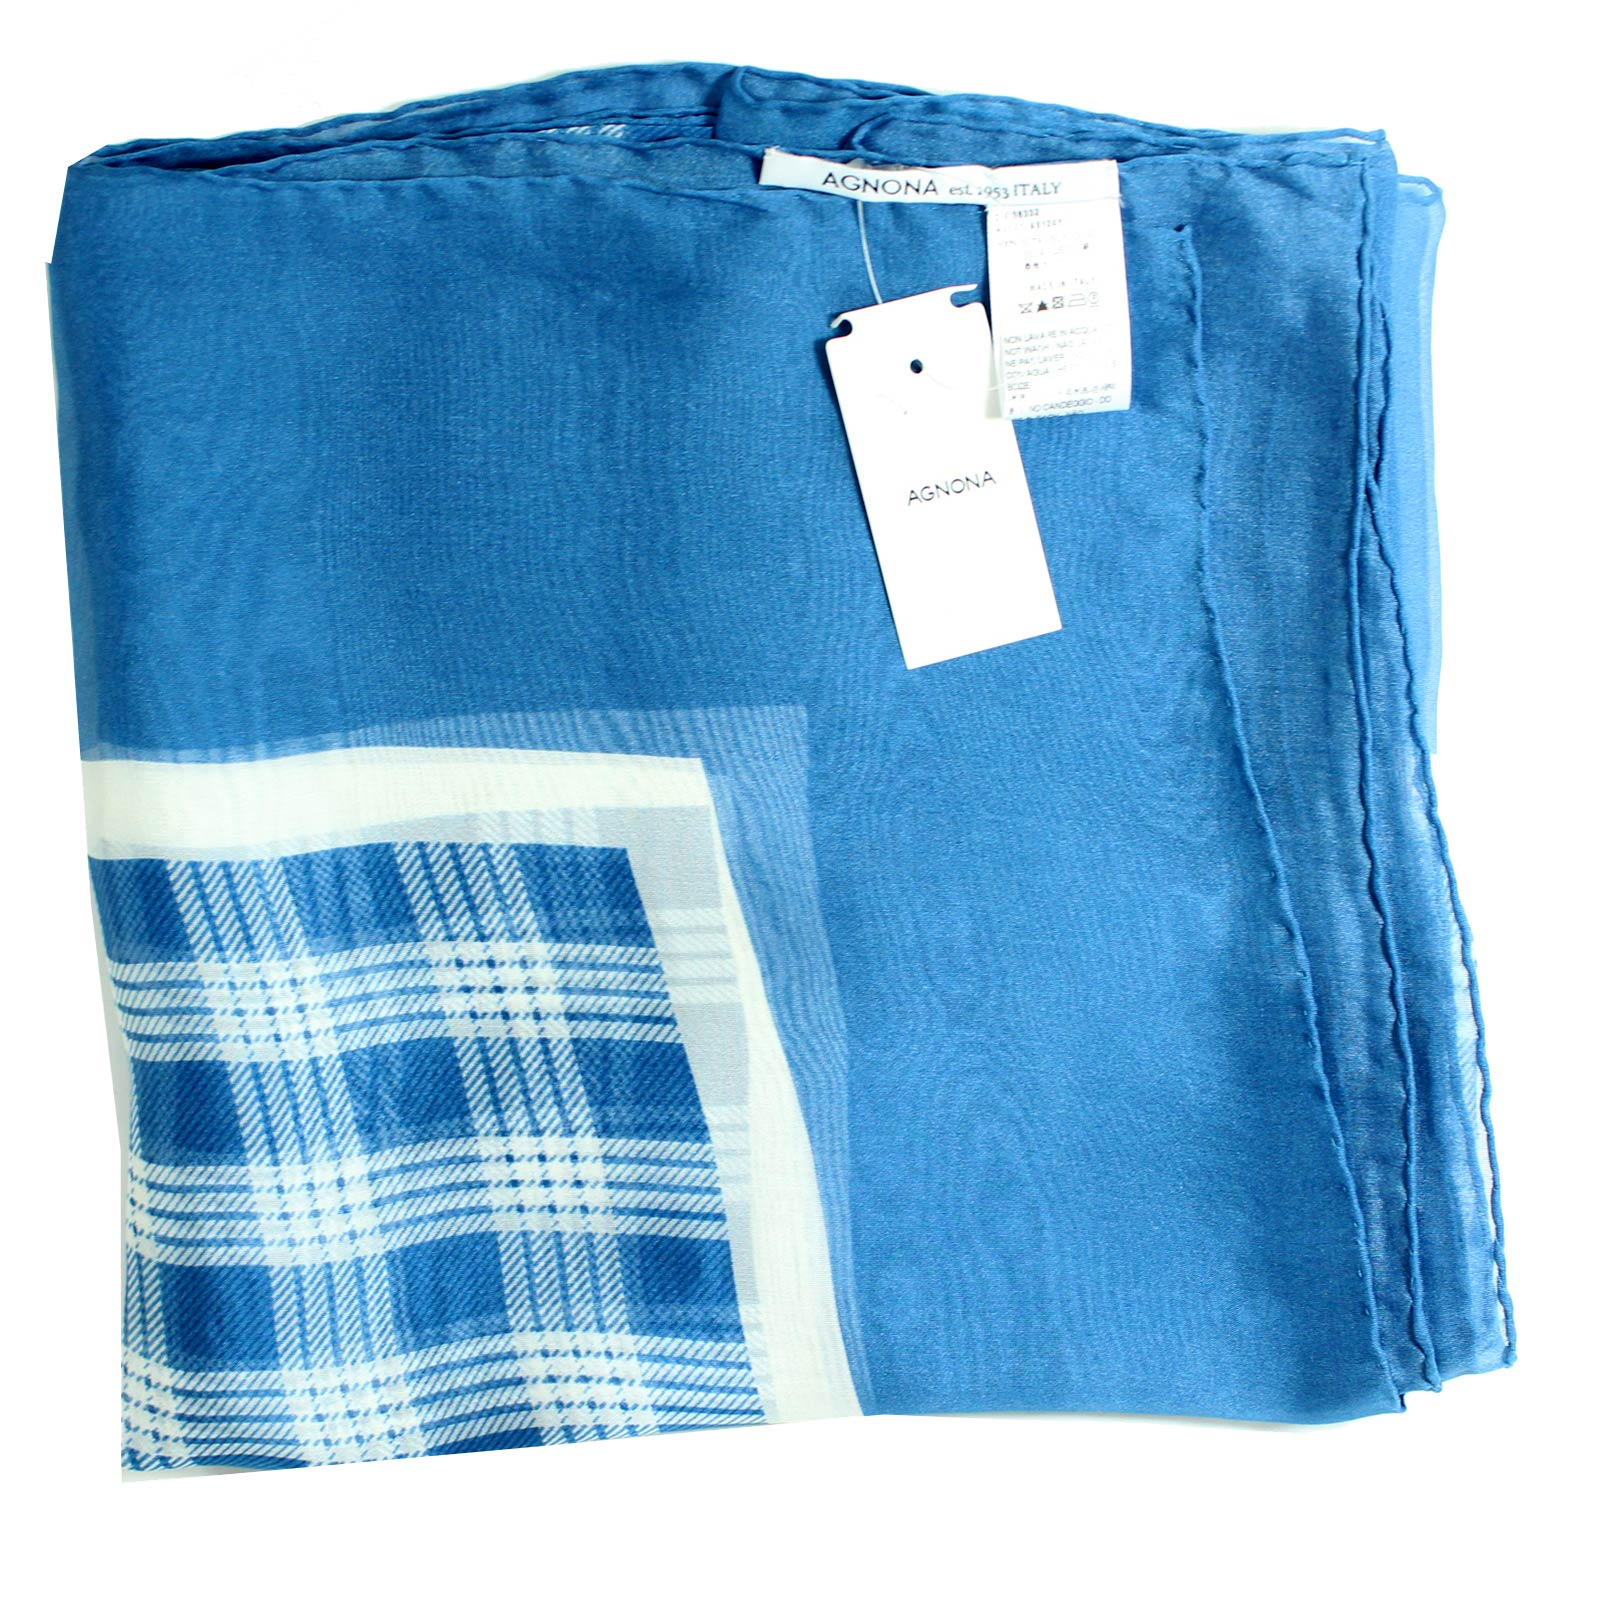 Agnona Scarf Blue White Plaid Check - Chiffon Silk Extra Large Square Scarf FINAL SALE